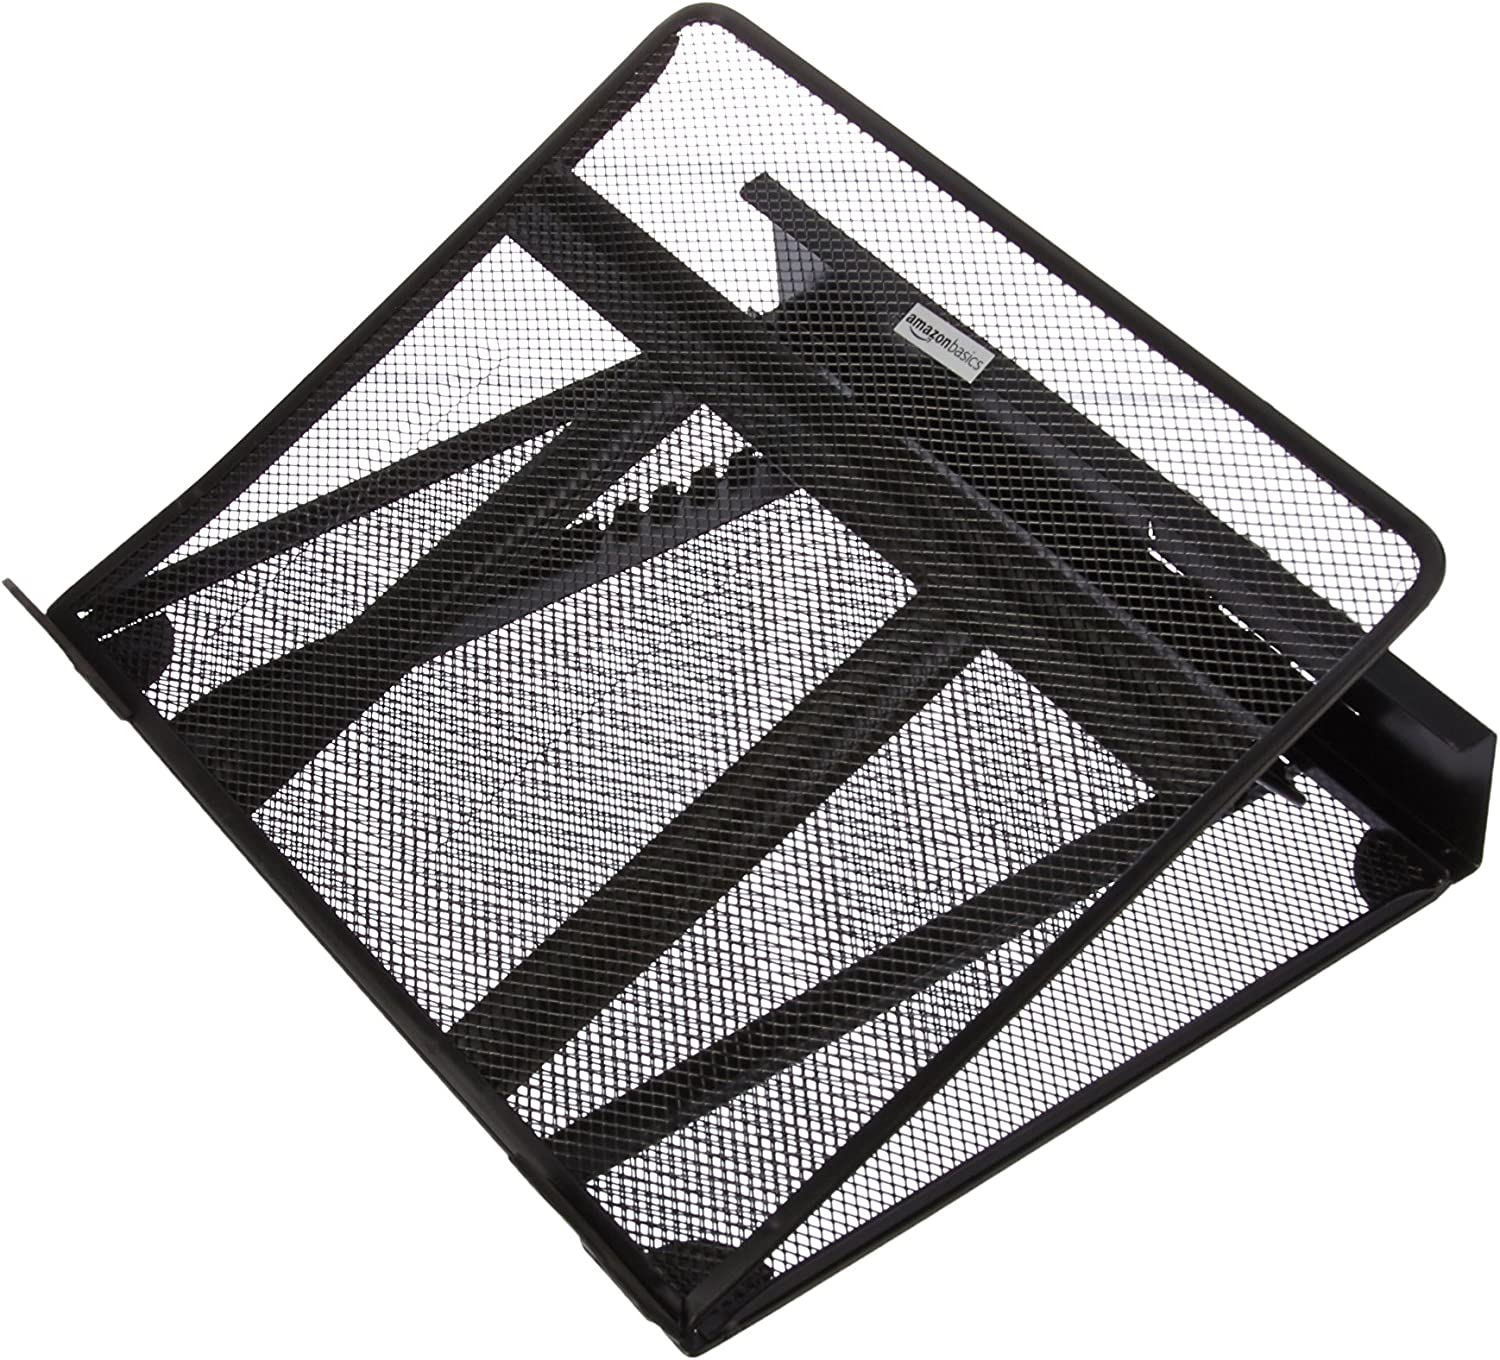 Ventilated Adjustable Laptop Stand image 1